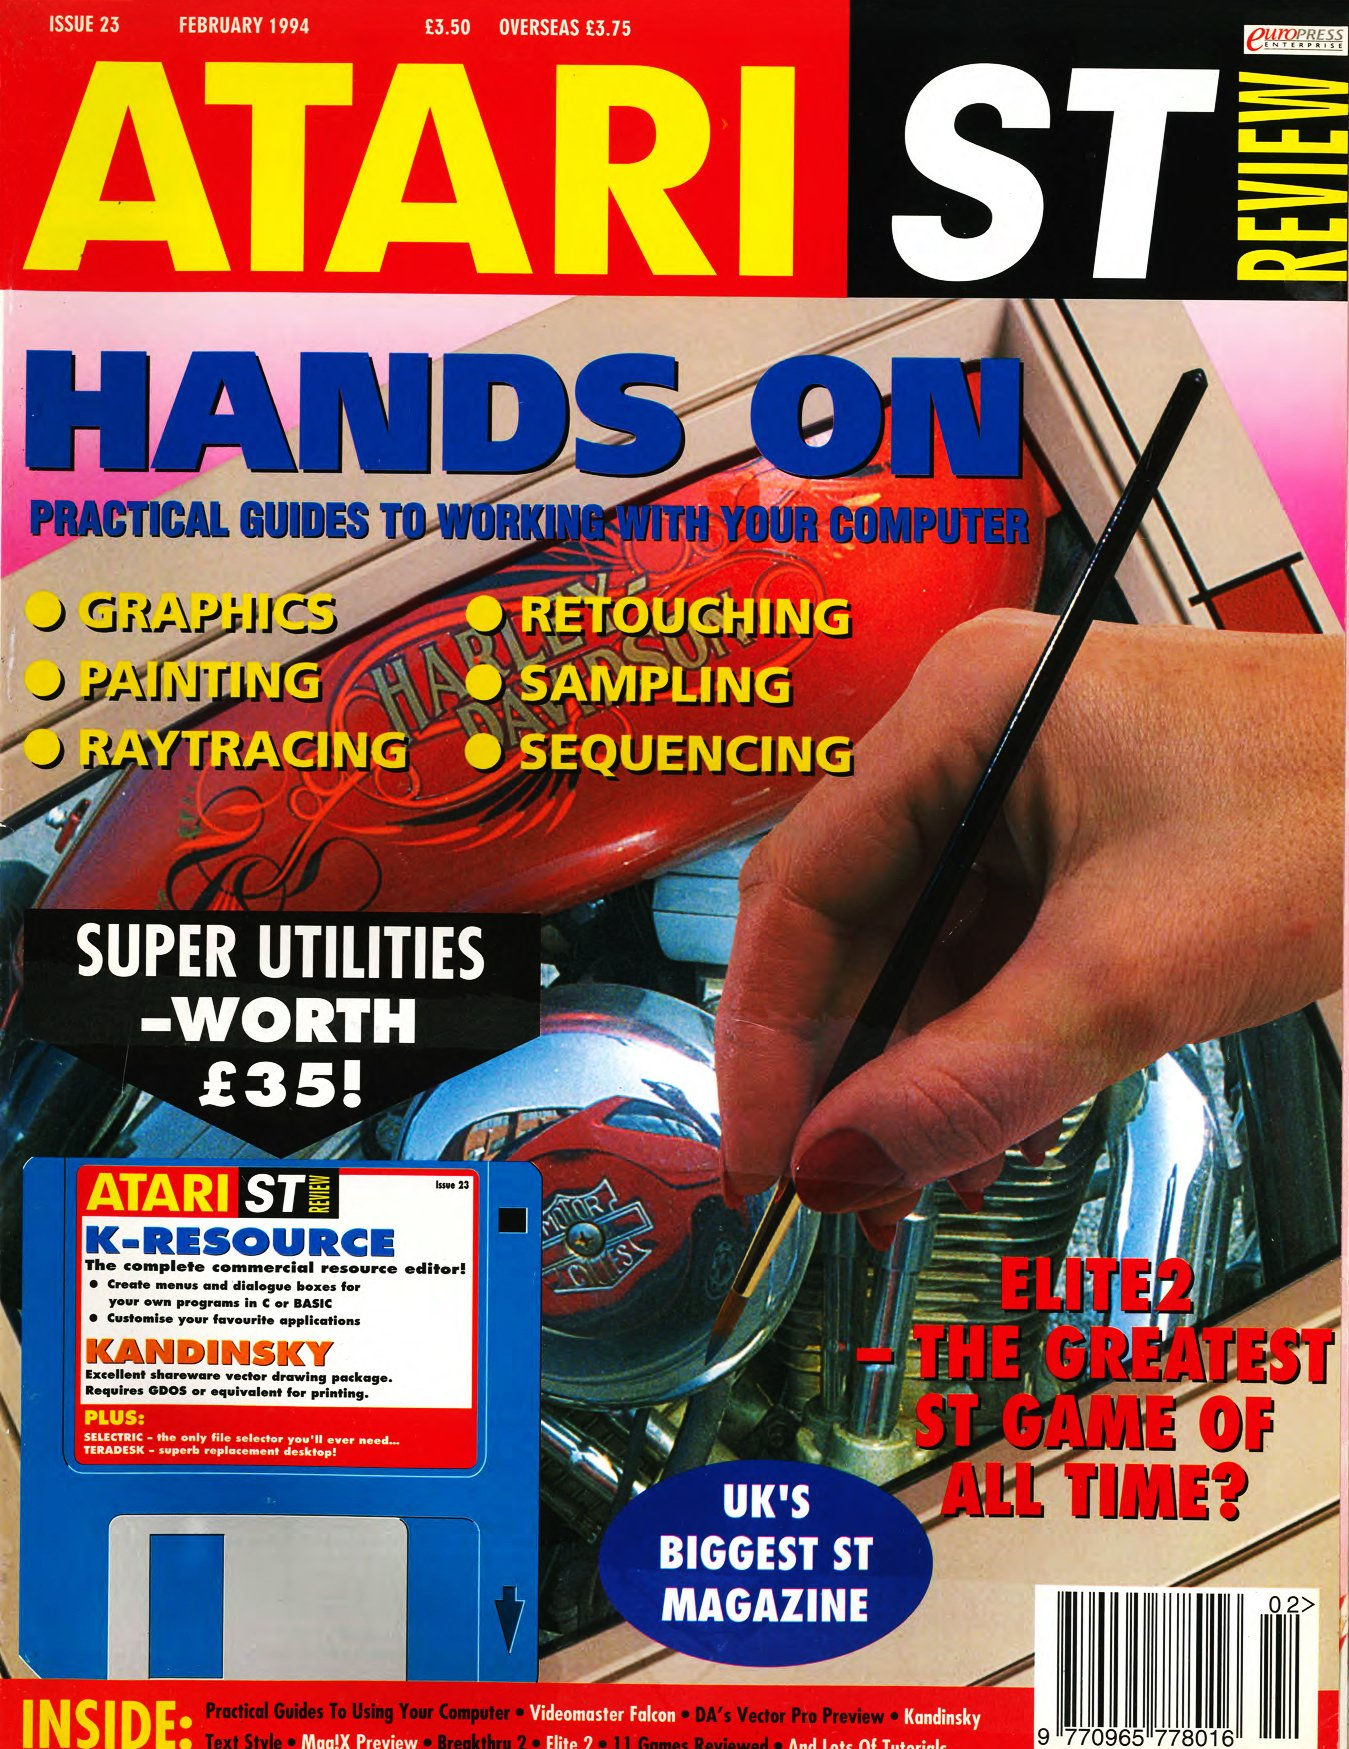 Atari ST Review Issue 23 (February 1994)